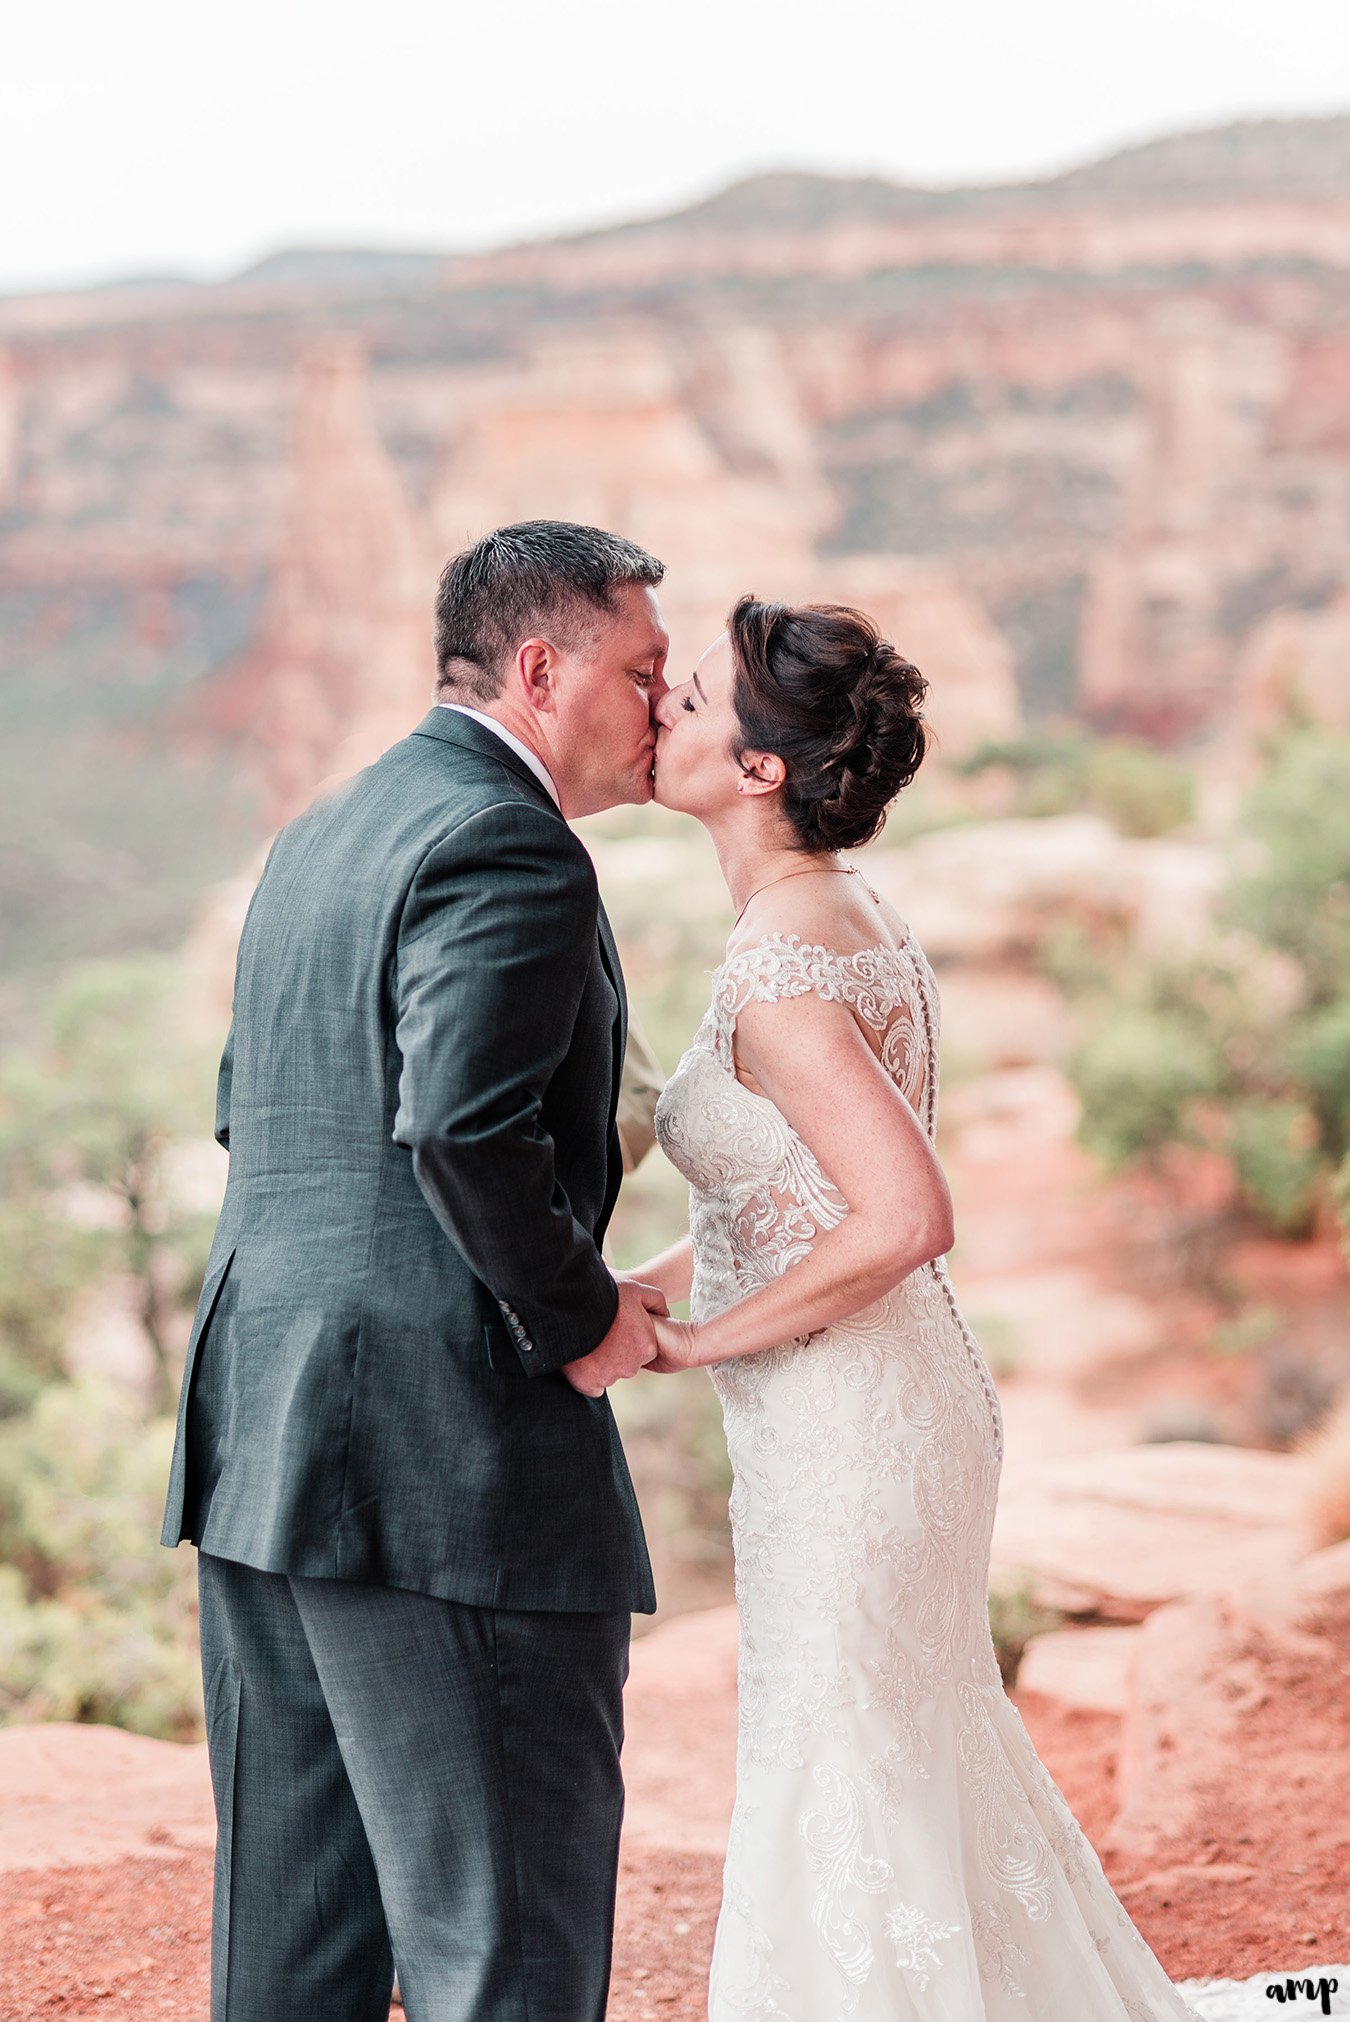 Newlyweds share their first kiss on the national monument in Grand Junction